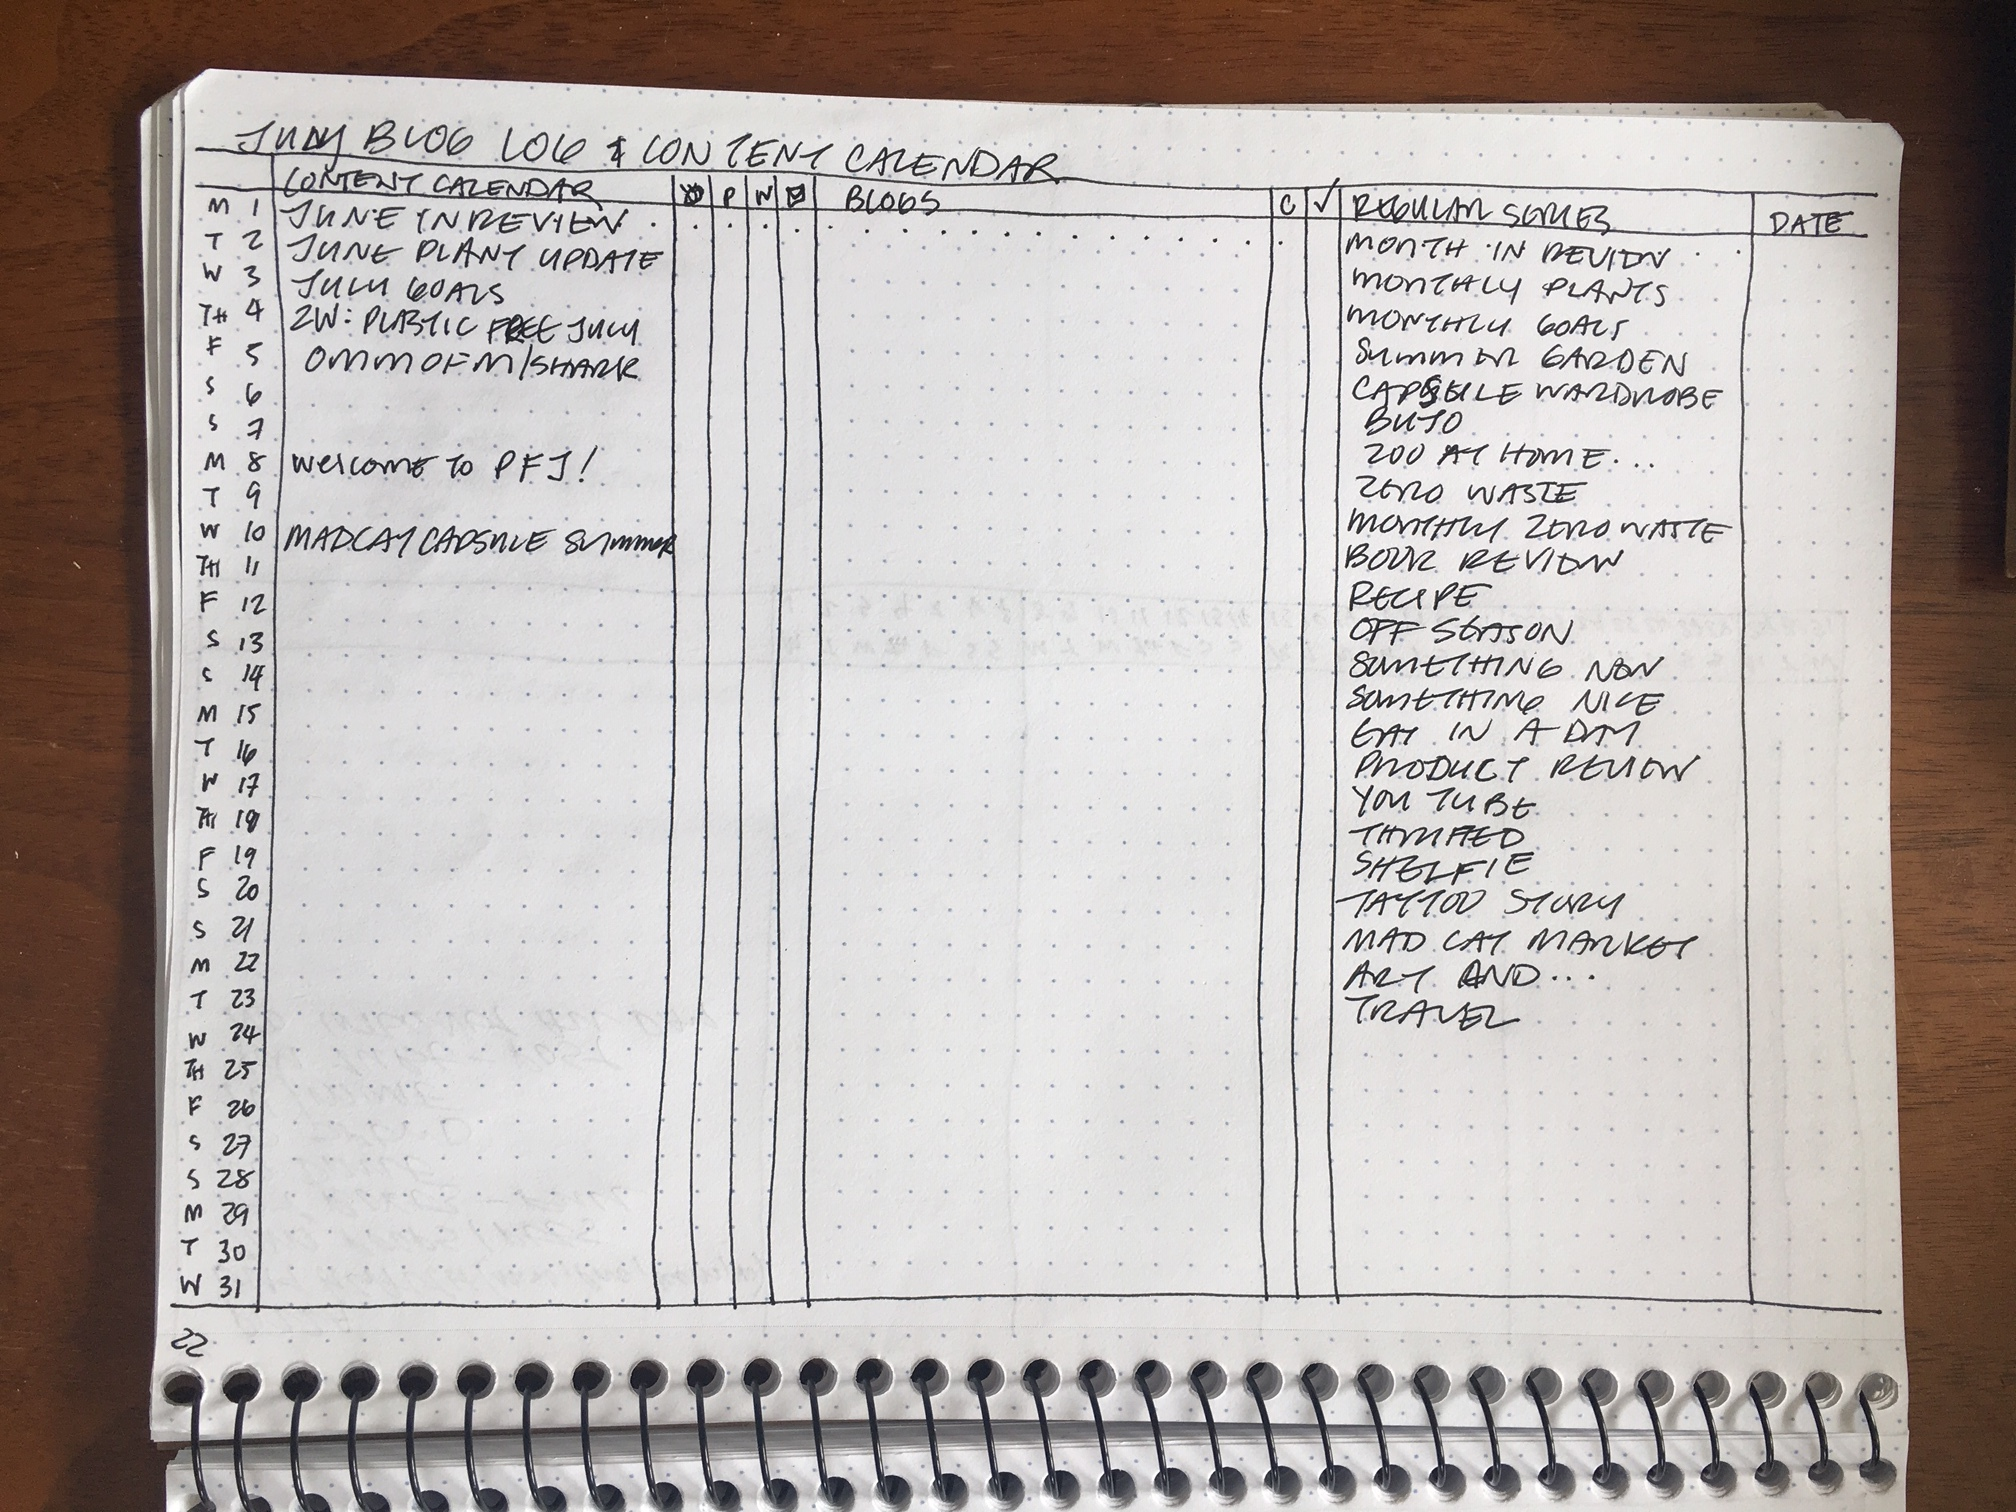 Since starting this journal, I've created a new blog log and content calendar.